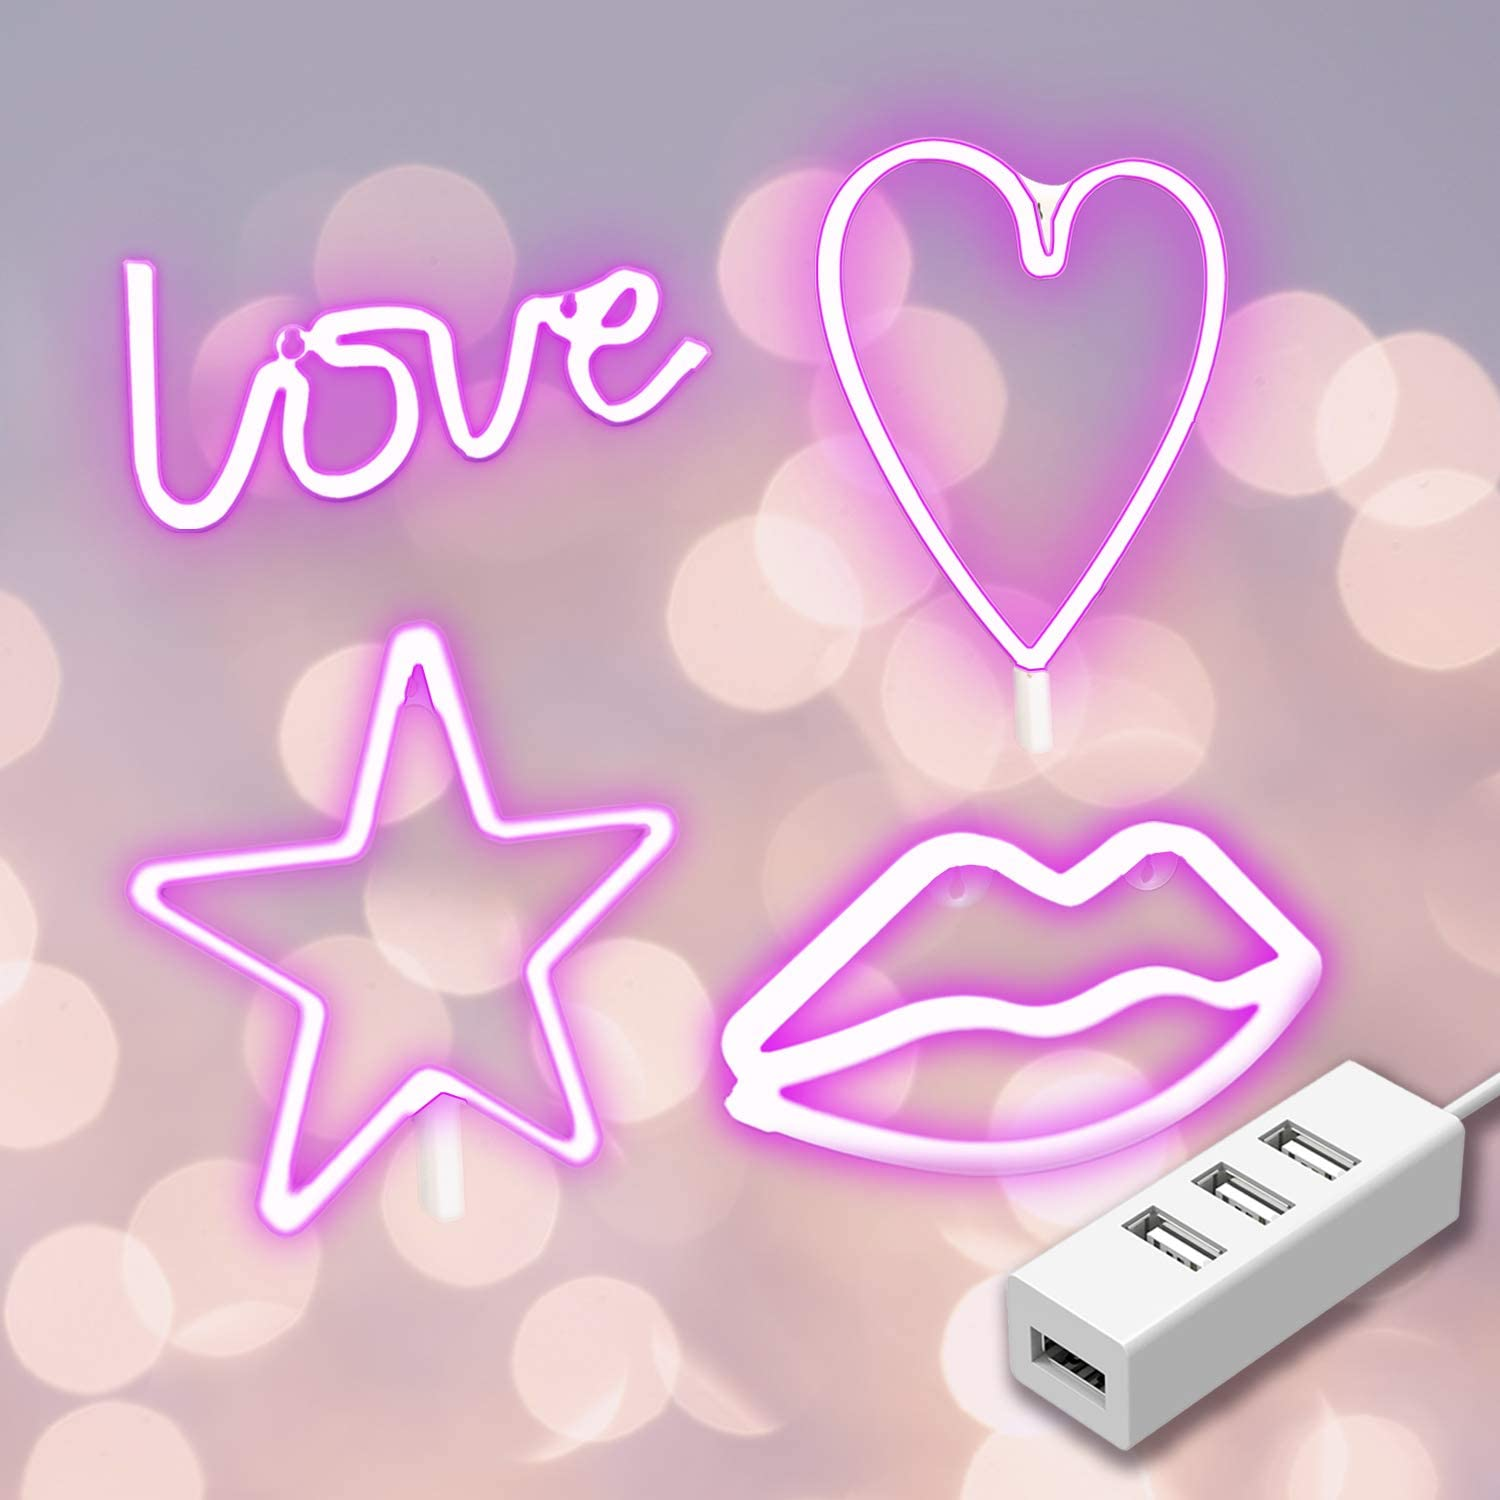 Adust Neon Signs Lights LED - 4-Pack Neon Love | Heart | Star | Lip Signs USB Charging & Battery Wall Decor for Girls Bedroom House Bar Pub Party Wedding Valentine's Day with USB Hub (Pink Neon)